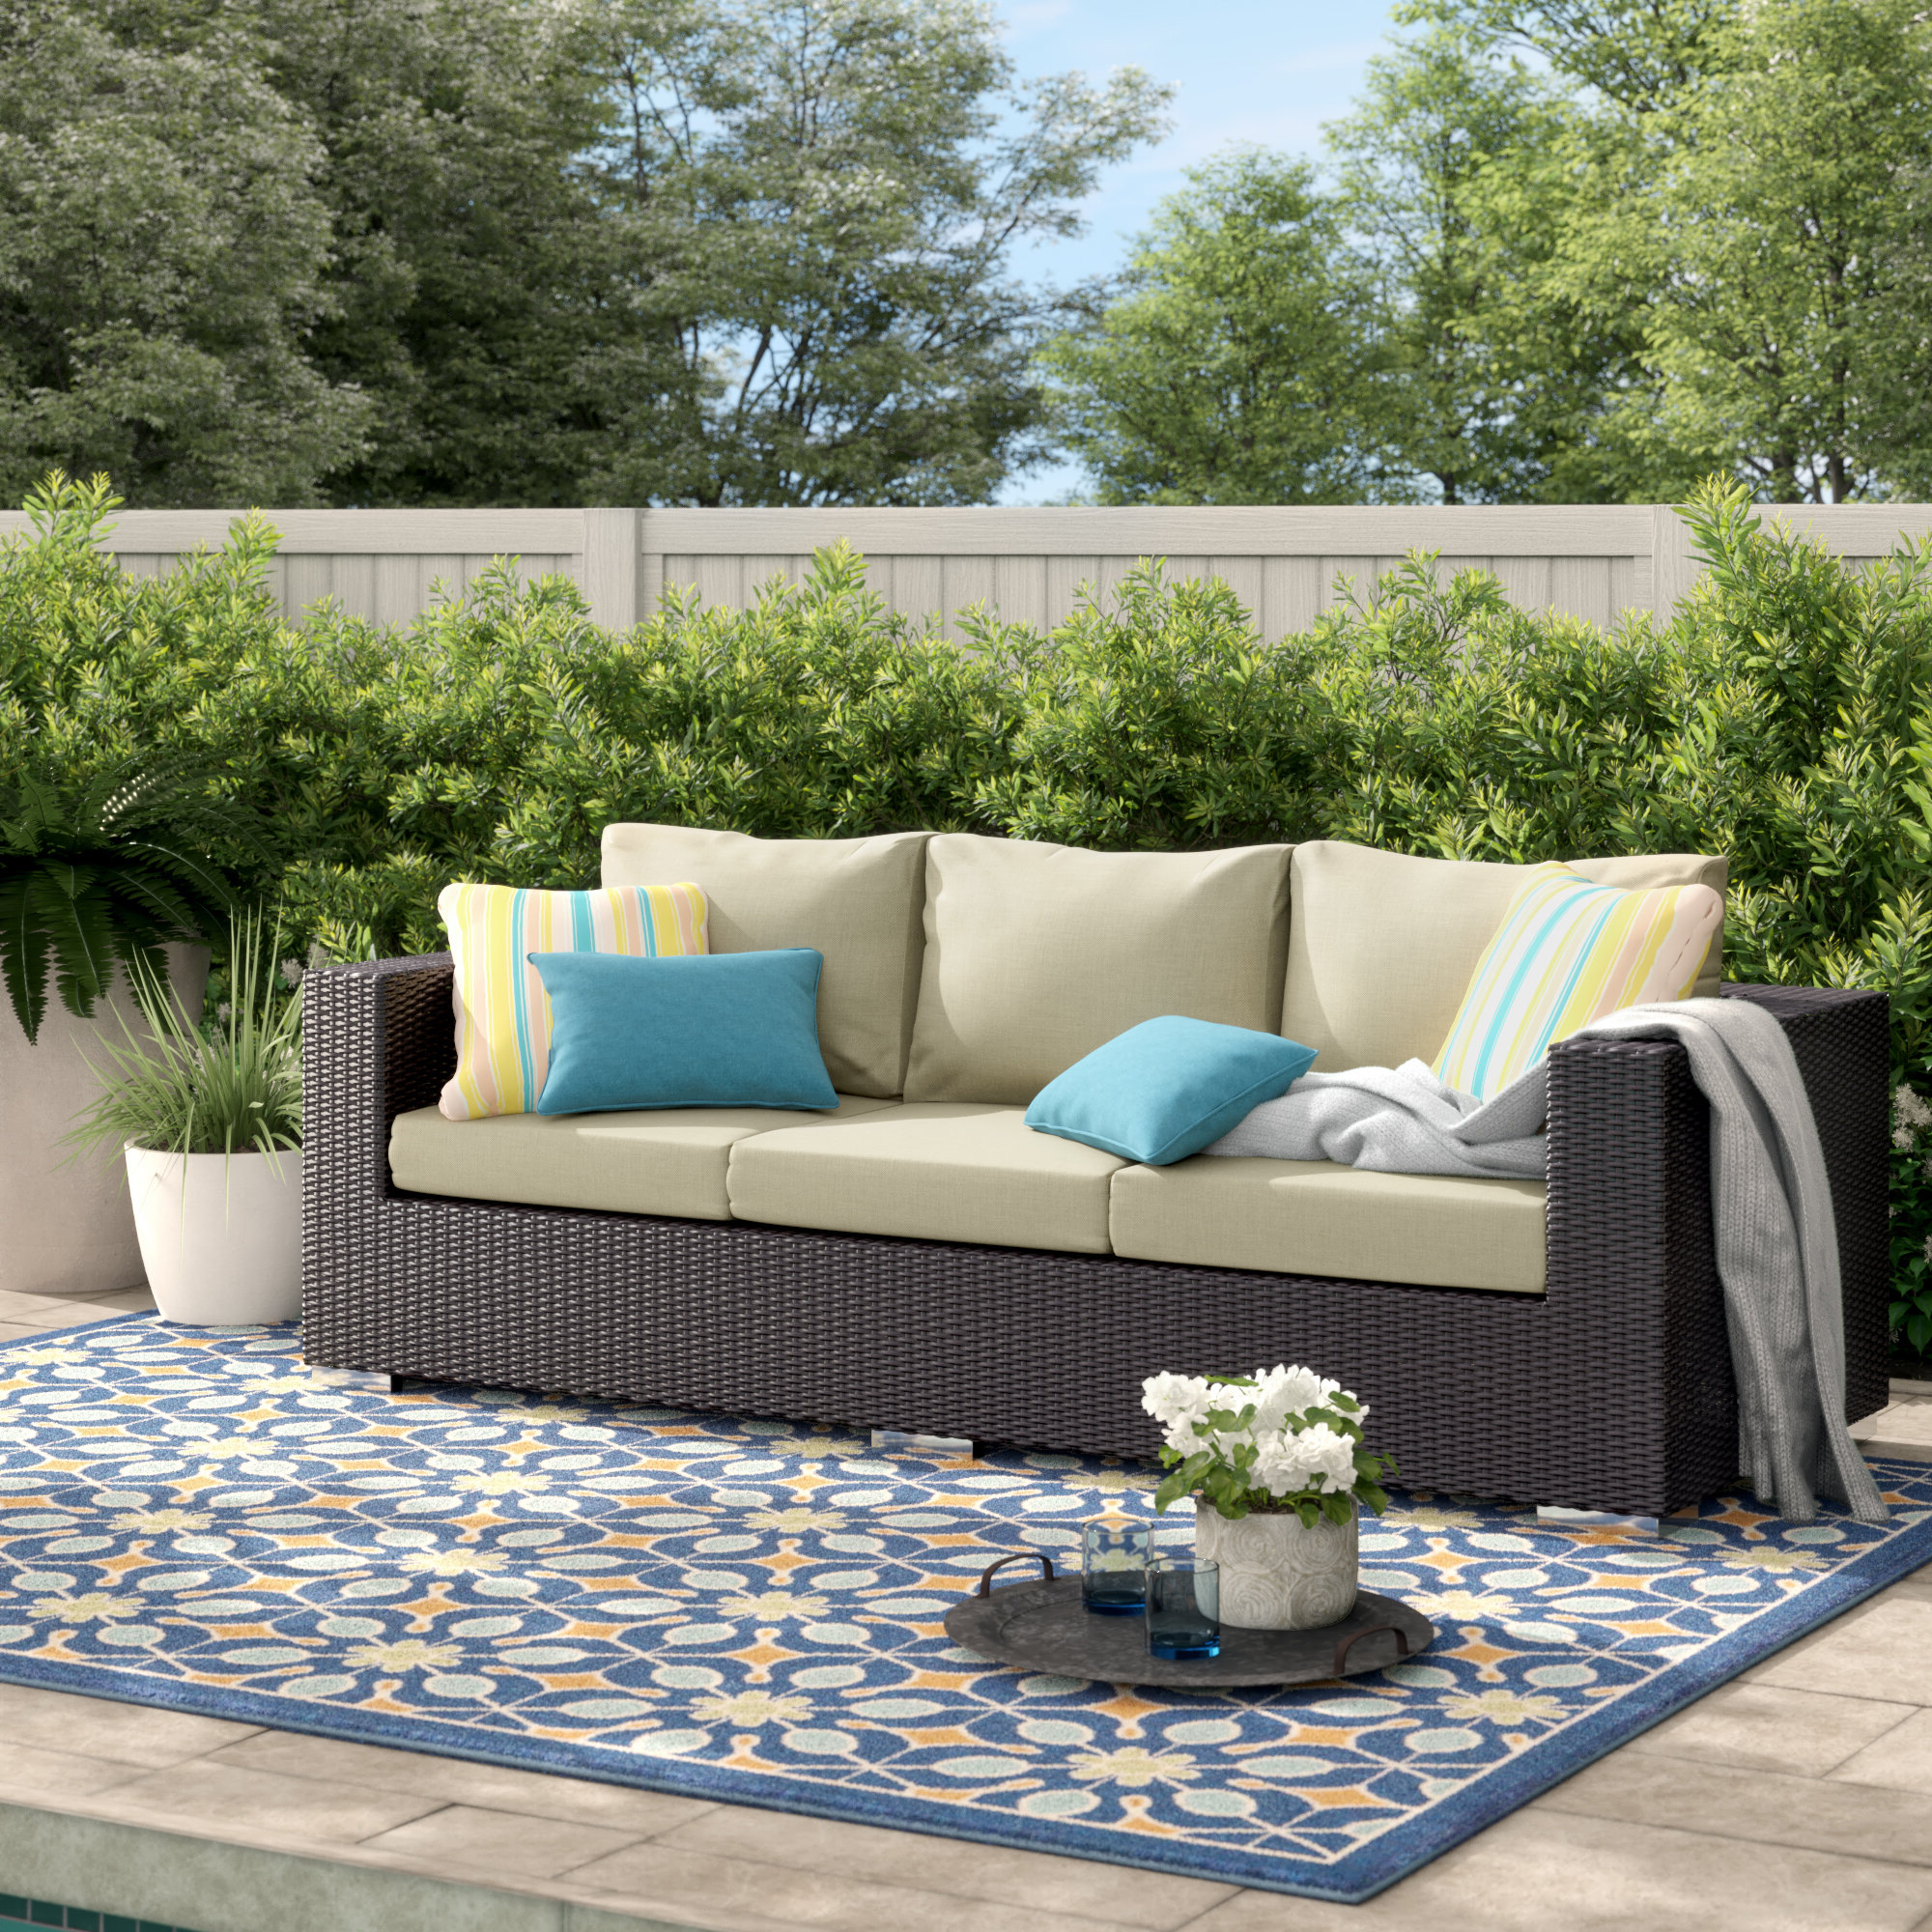 Mcmanis Patio Sofas With Cushion With 2020 Brentwood Patio Sofa With Cushions (View 15 of 20)